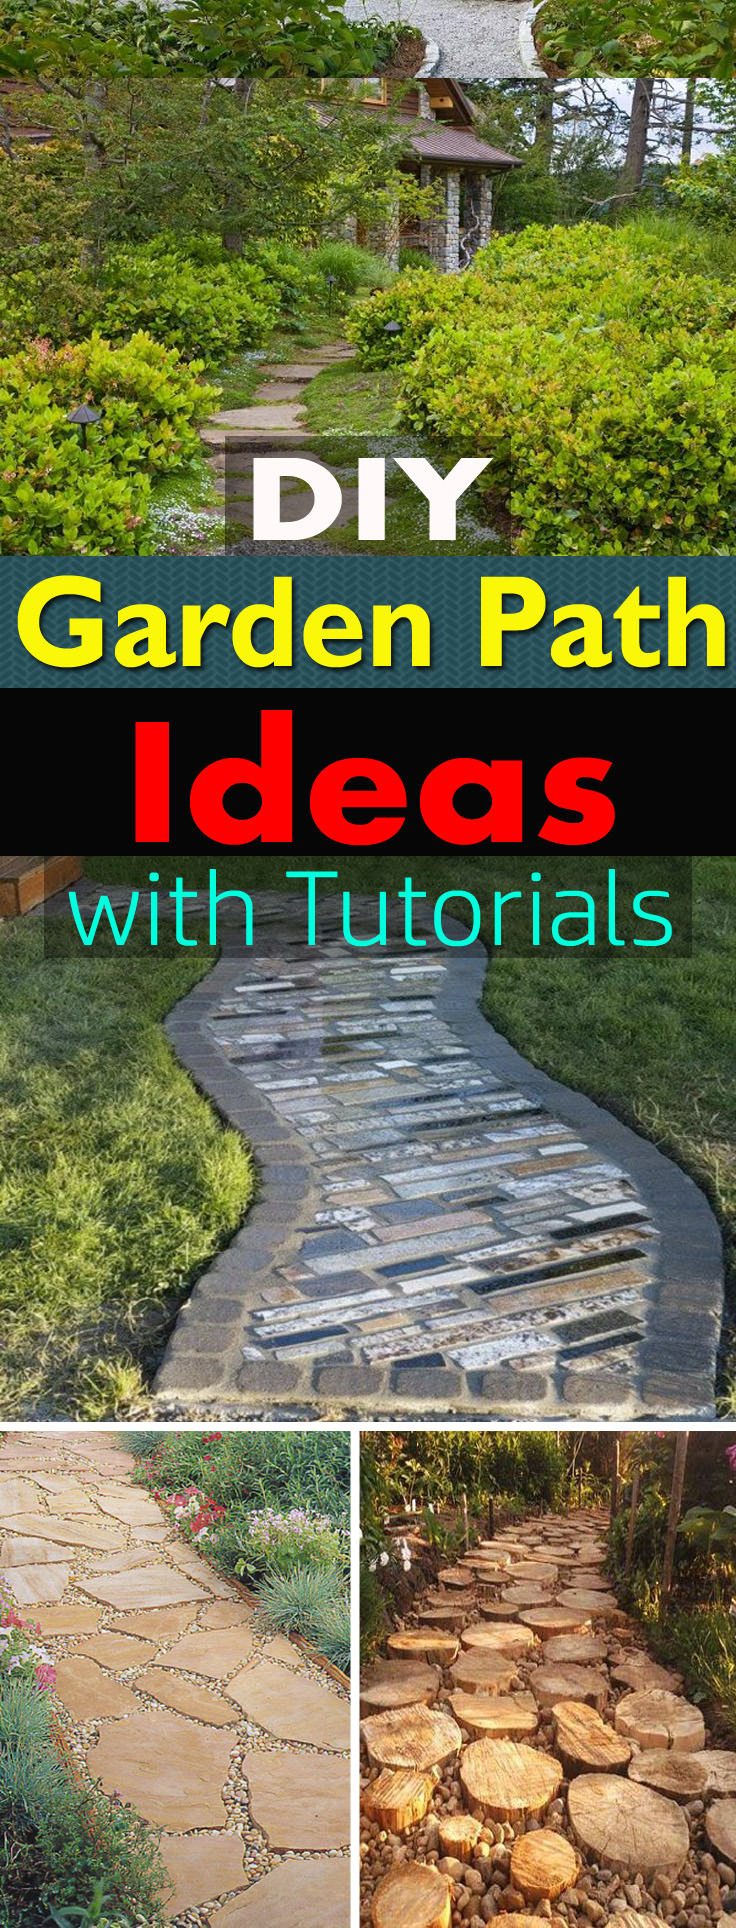 Diy Garden Path Ideas 19 diy garden path ideas with tutorials | balcony garden web